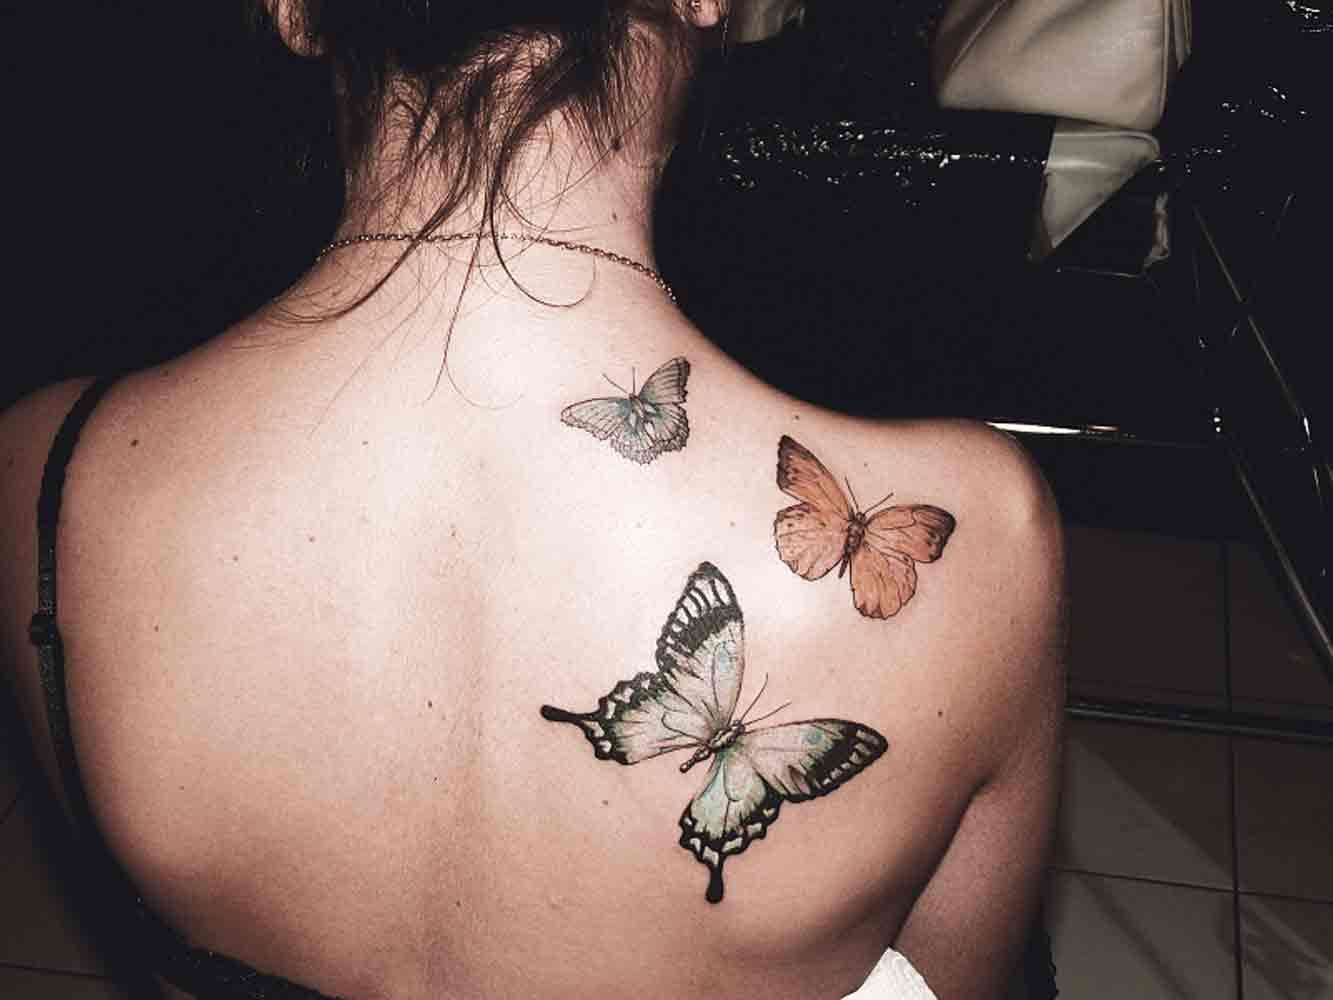 Butterfly Tattoos Tumblr Http Pictrends Com Tattoos Butterfly Tattoos Tumblr Butterfly Back Tattoo Butterfly Tattoo On Shoulder Butterfly Tattoo